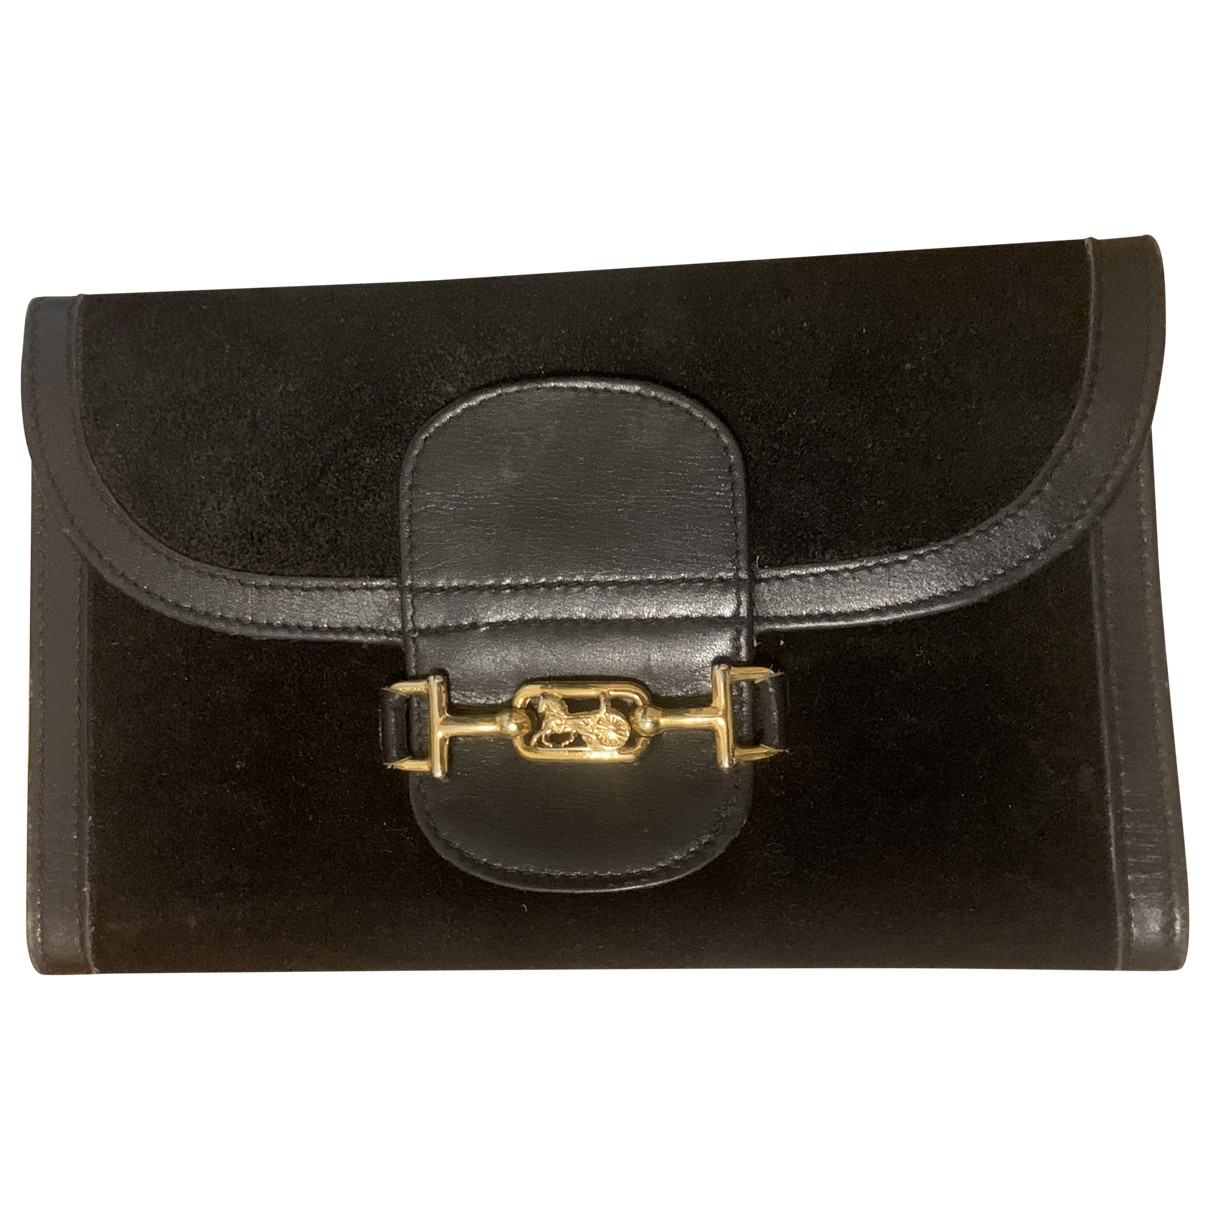 Celine \N Black Suede wallet for Women \N